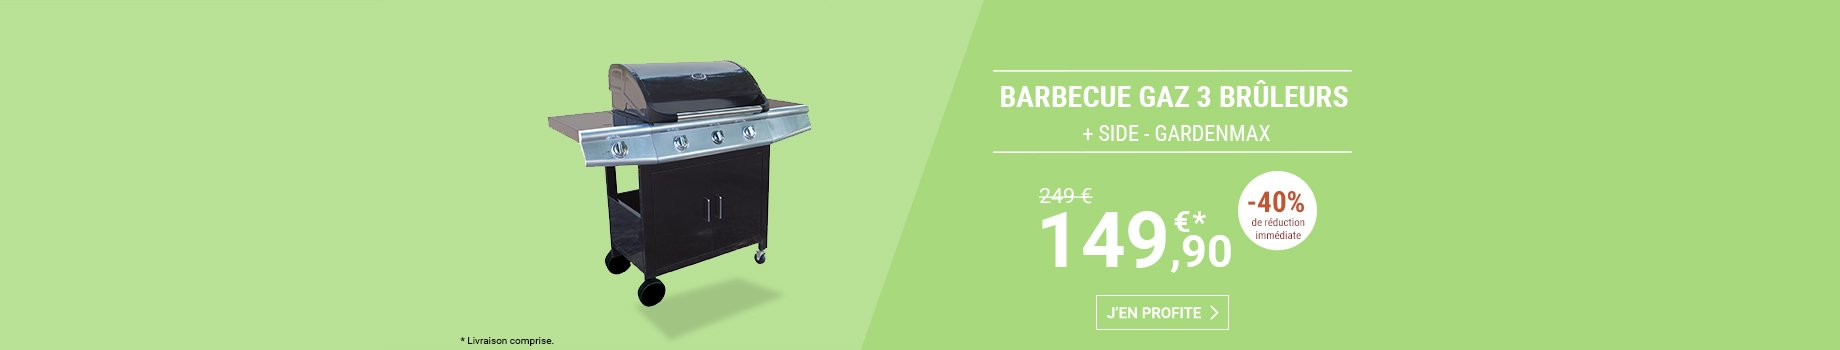 Barbecue Gardenmax